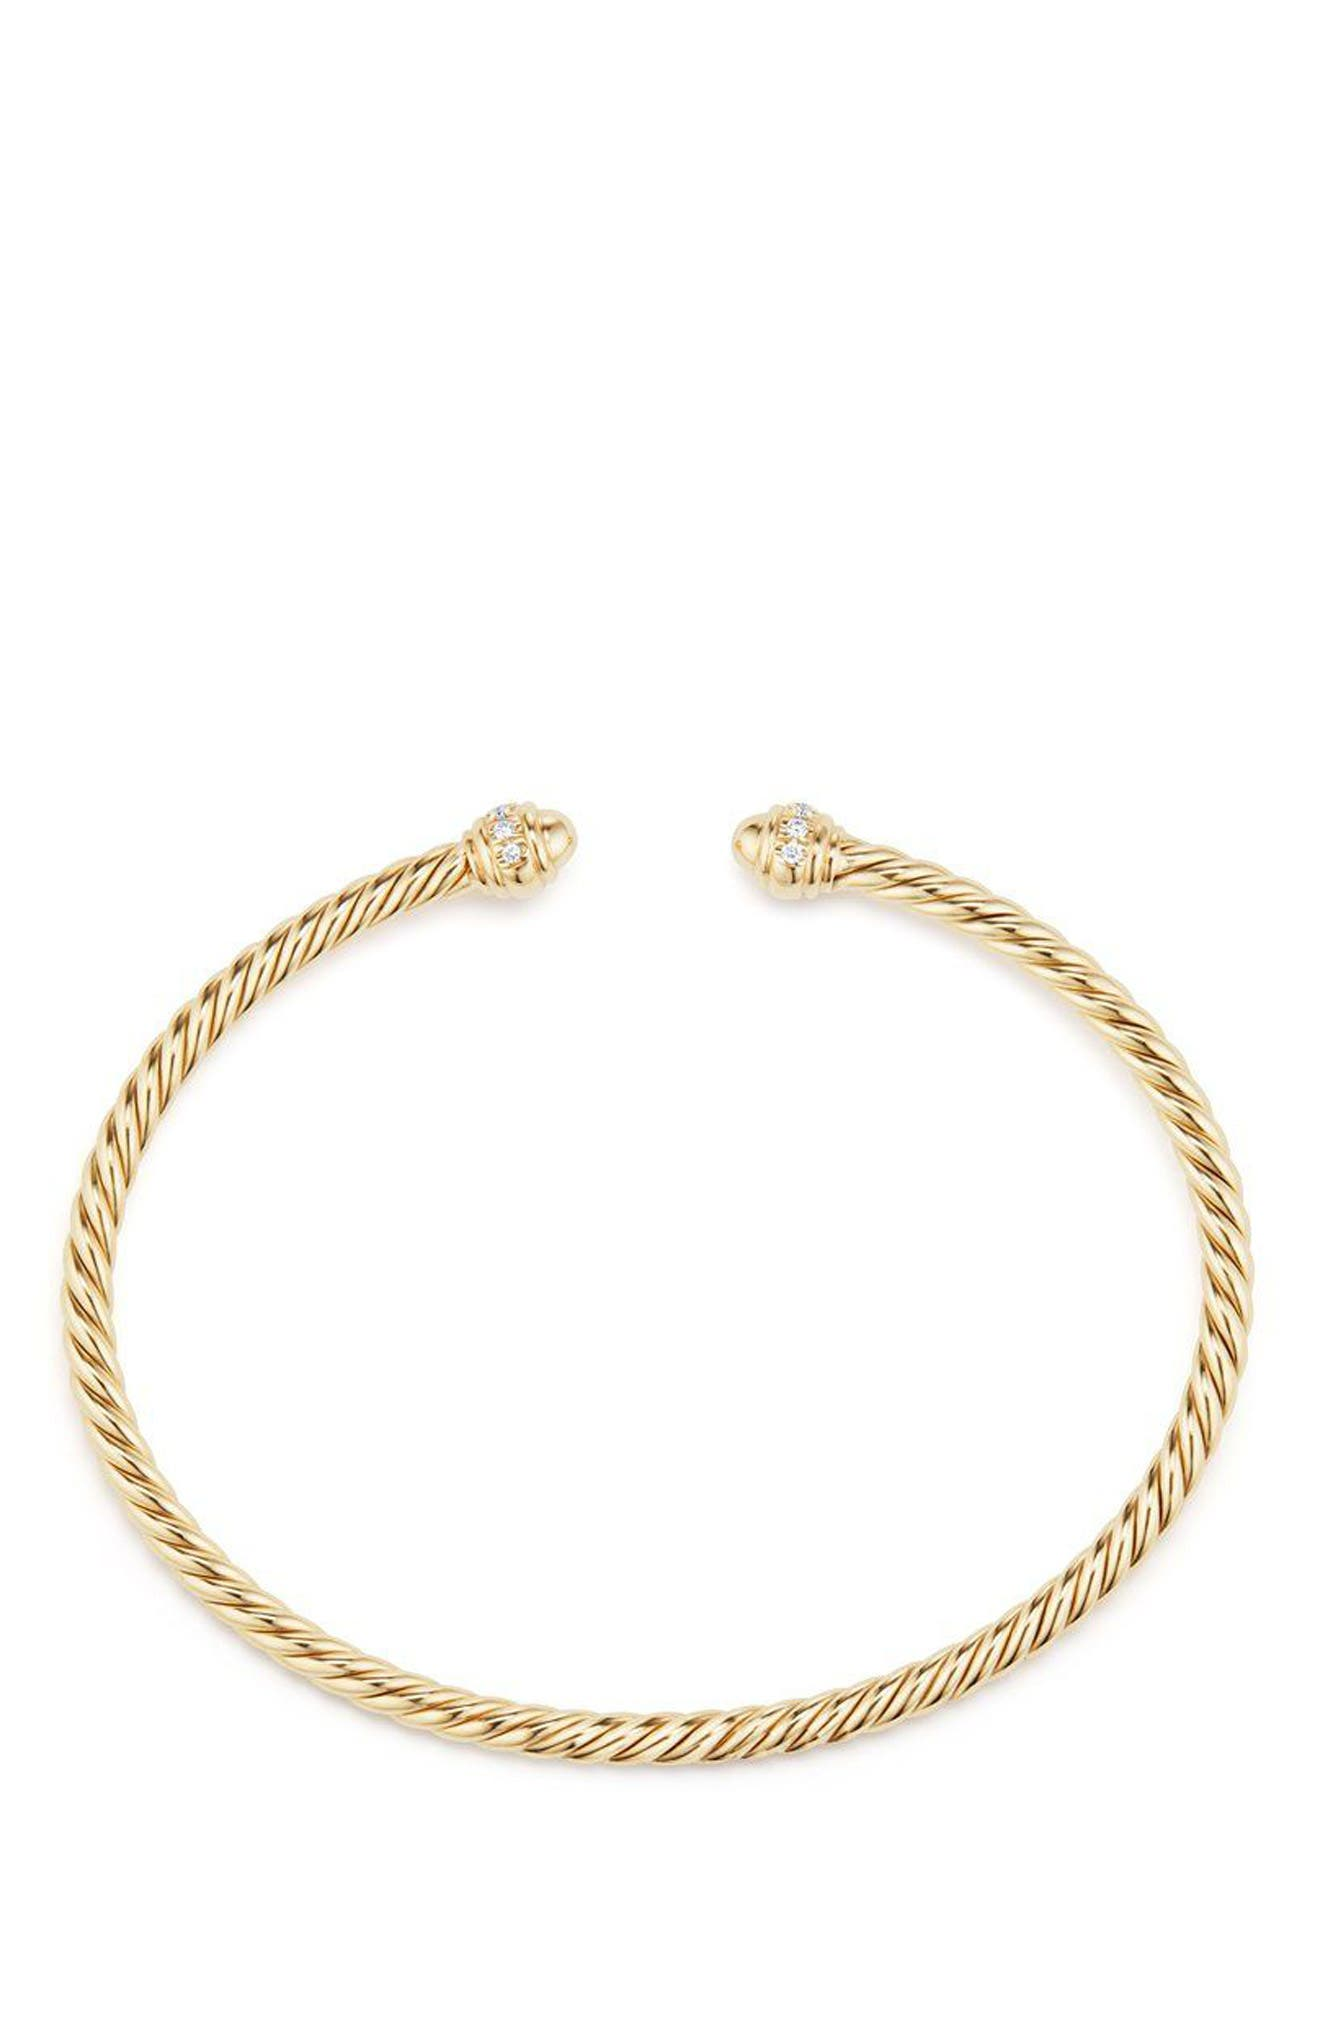 Cable Spira Bracelet in 18K Gold with Diamonds, 3mm,                             Alternate thumbnail 2, color,                             GOLD/ DIAMOND